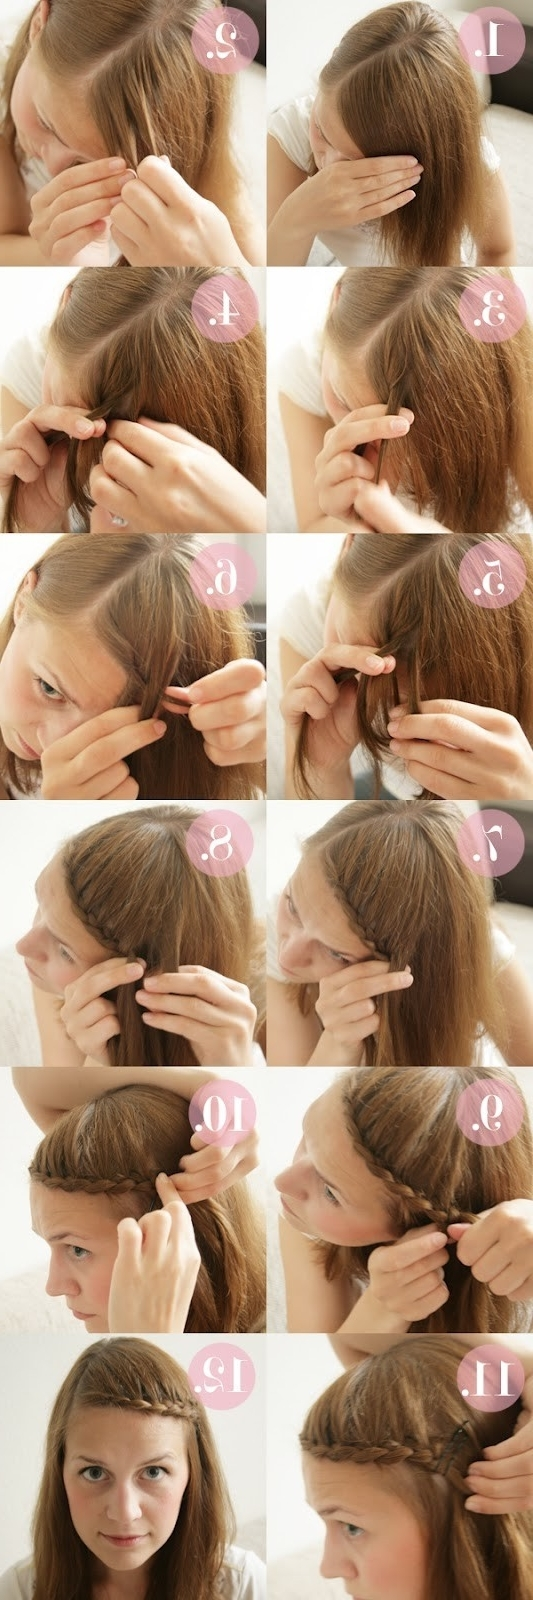 15 Braided Bangs Tutorials: Cute, Easy Hairstyles – Pretty Designs Inside Updos For Long Hair With Bangs (View 1 of 15)